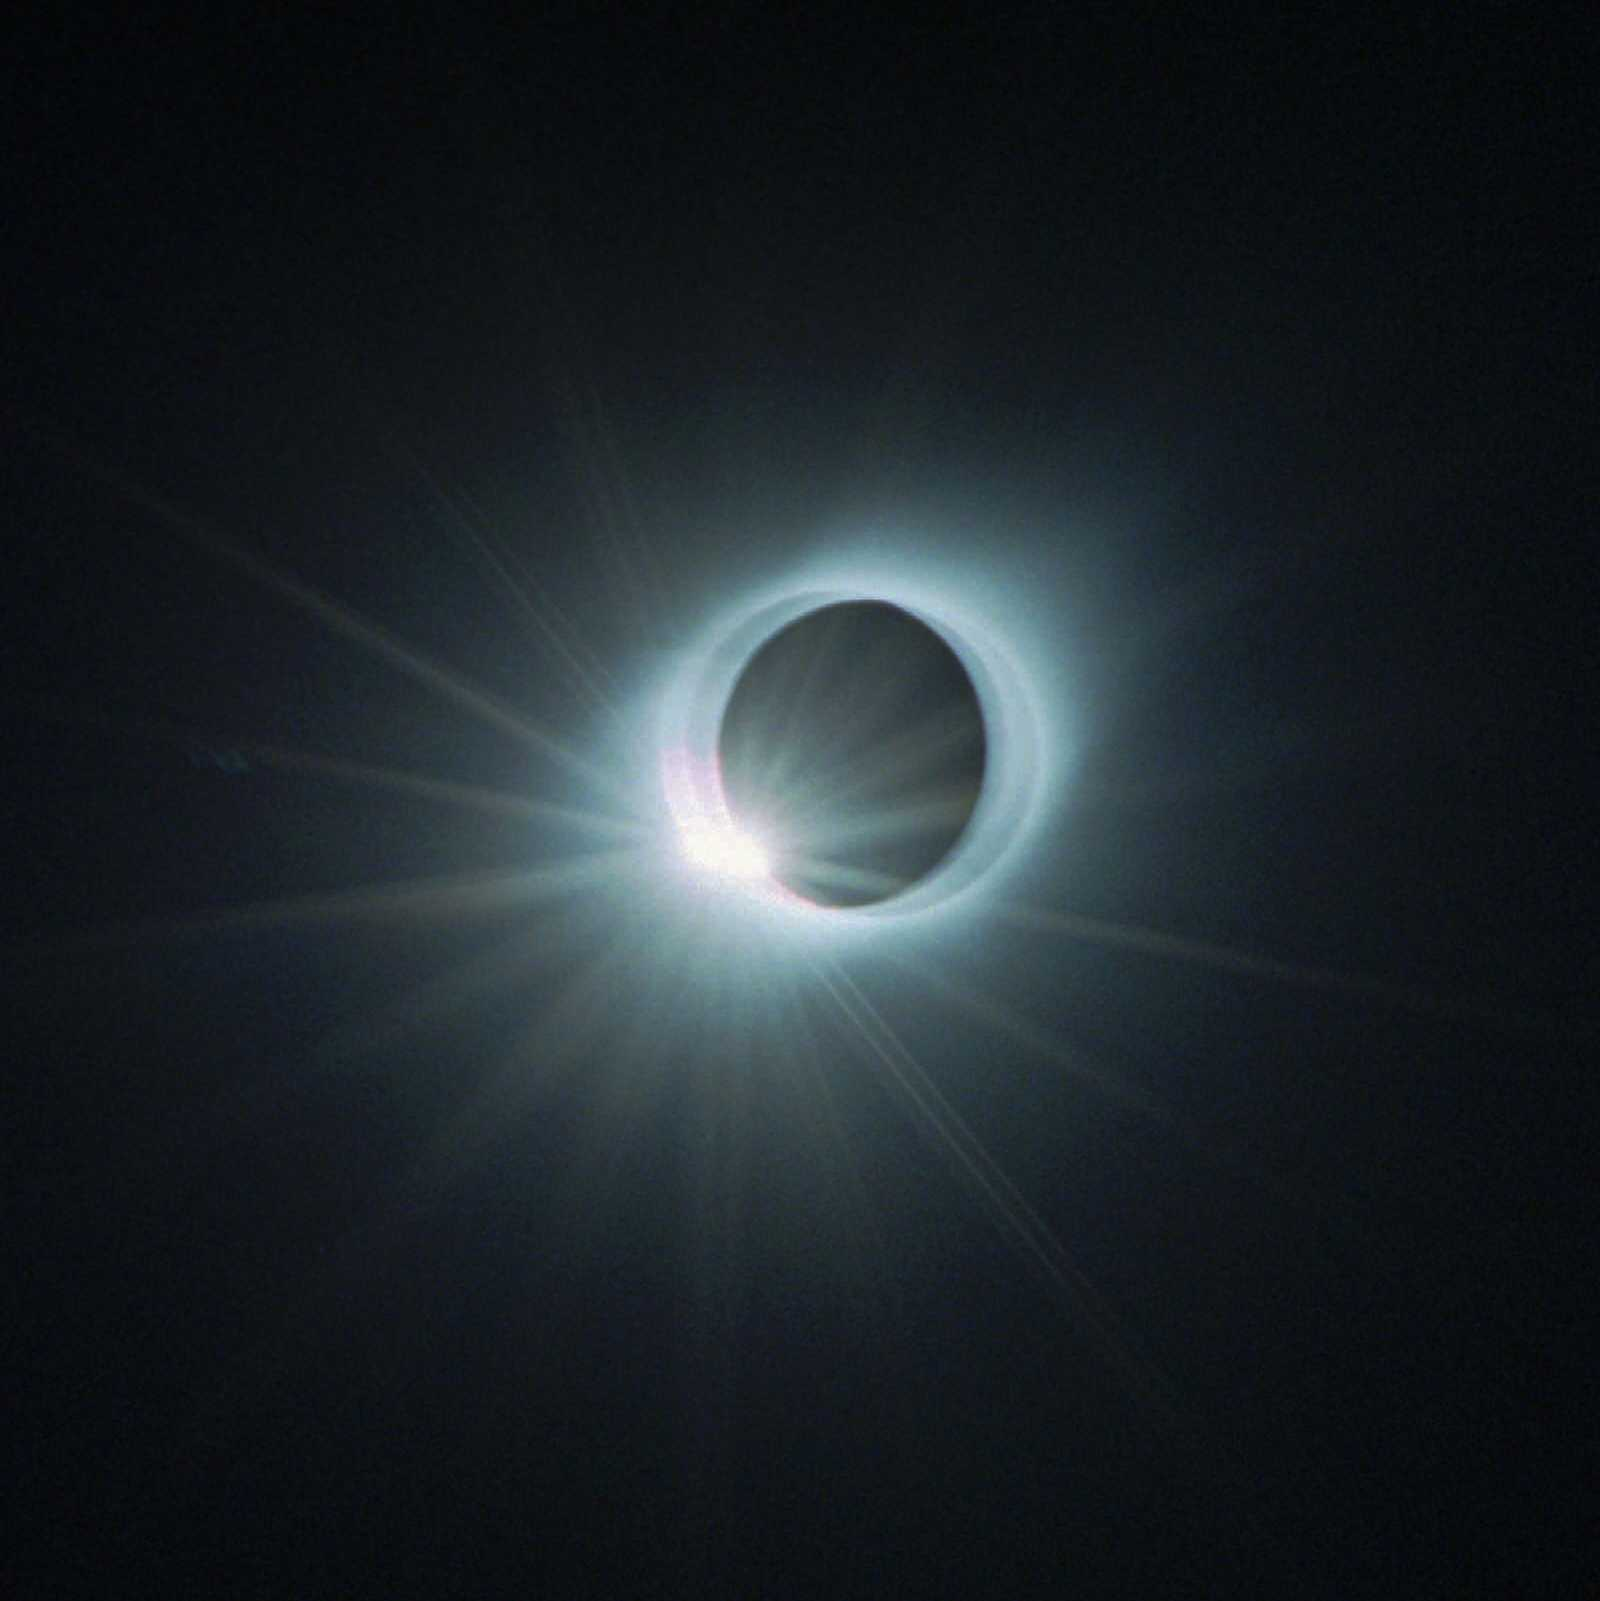 A total solar eclipse is seen above El Pico in Punto Fijo, Venezuela on Feb. 26, 1998. Parts of northern Venezuela, northern Colombia and the Caribbean witnessed the Western Hemisphere's last total solar eclipse of the century.